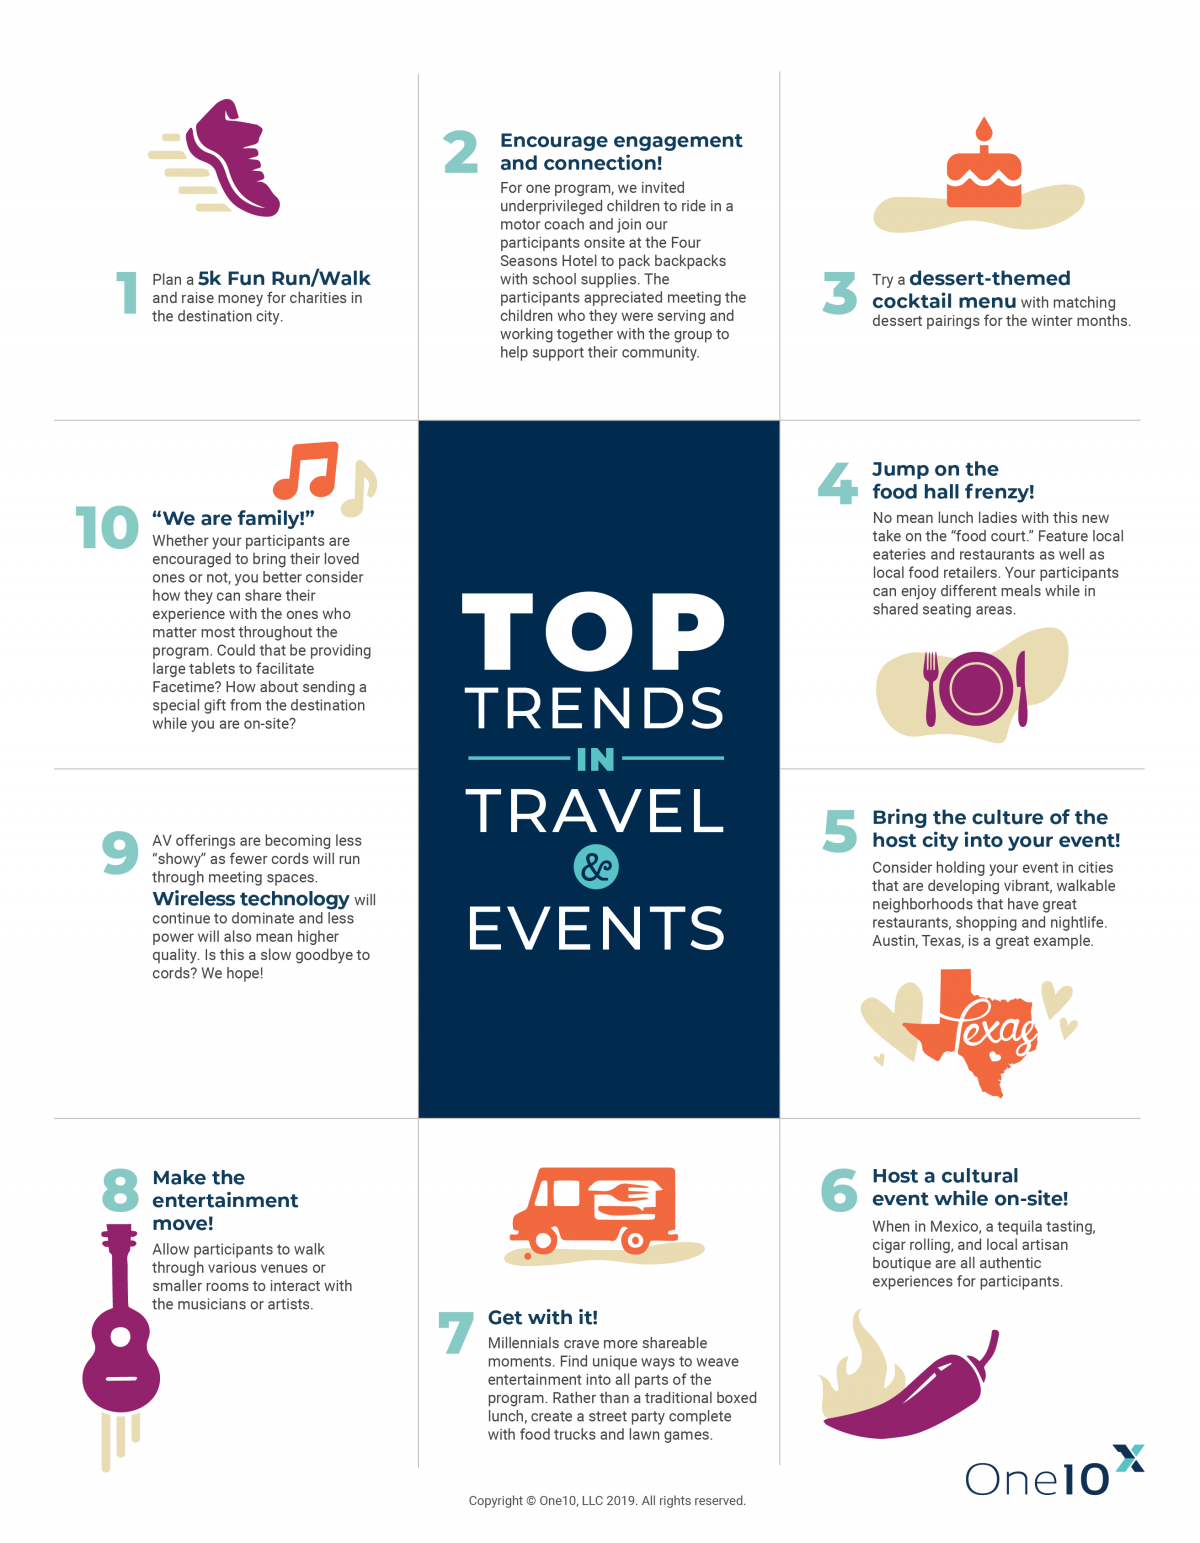 2019 Travel and Event Trends